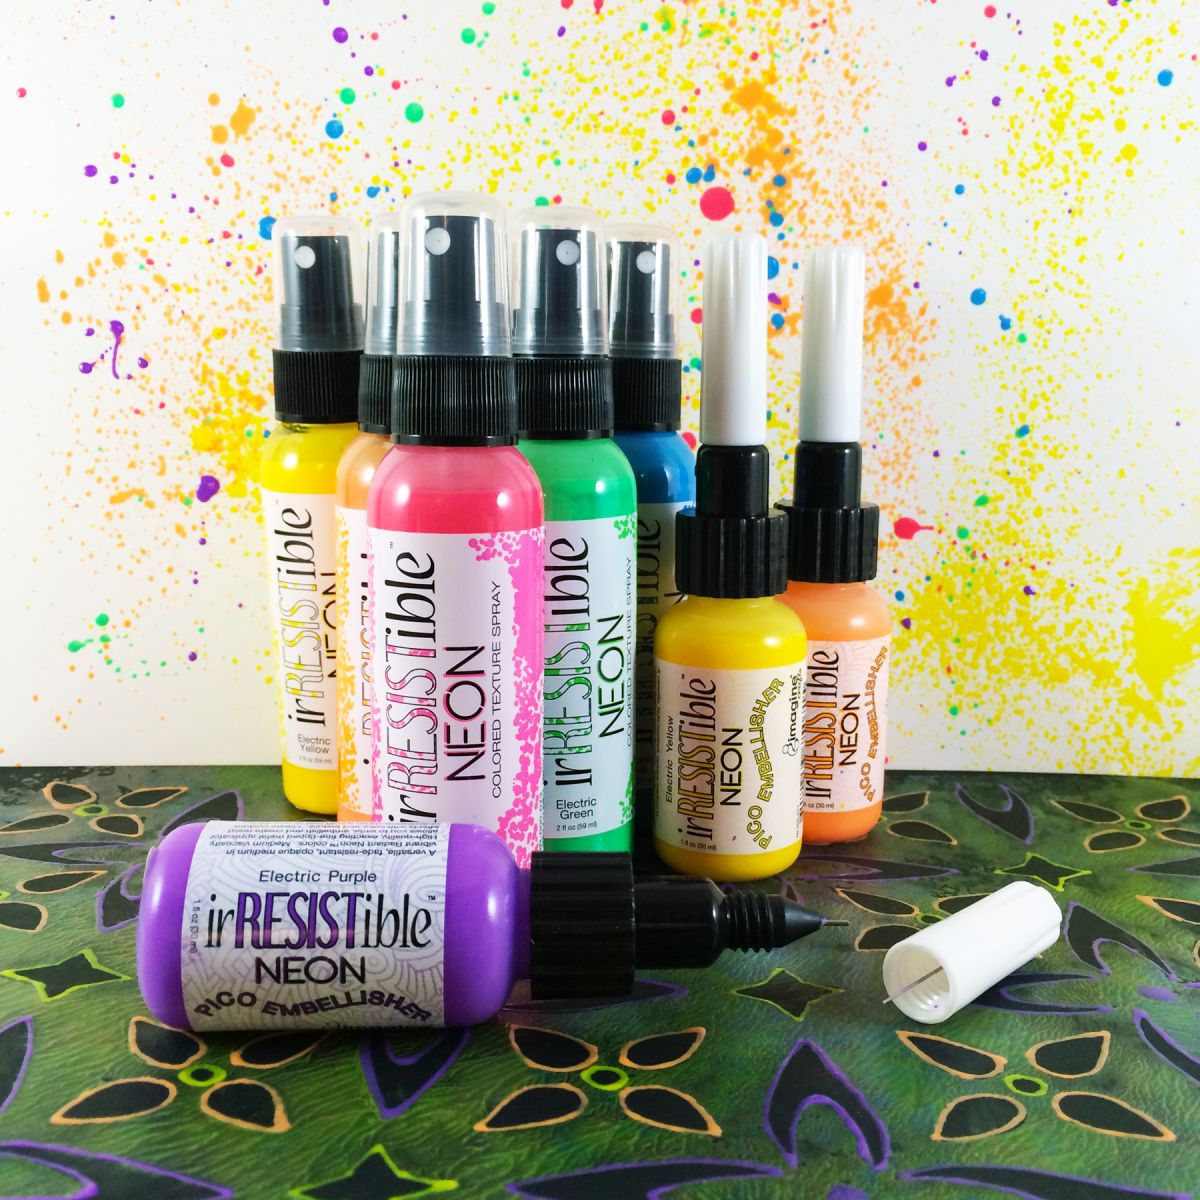 Multiple bottles of irRESISTible spray bottles and Pico Embellishers with a colorful background created using he product.